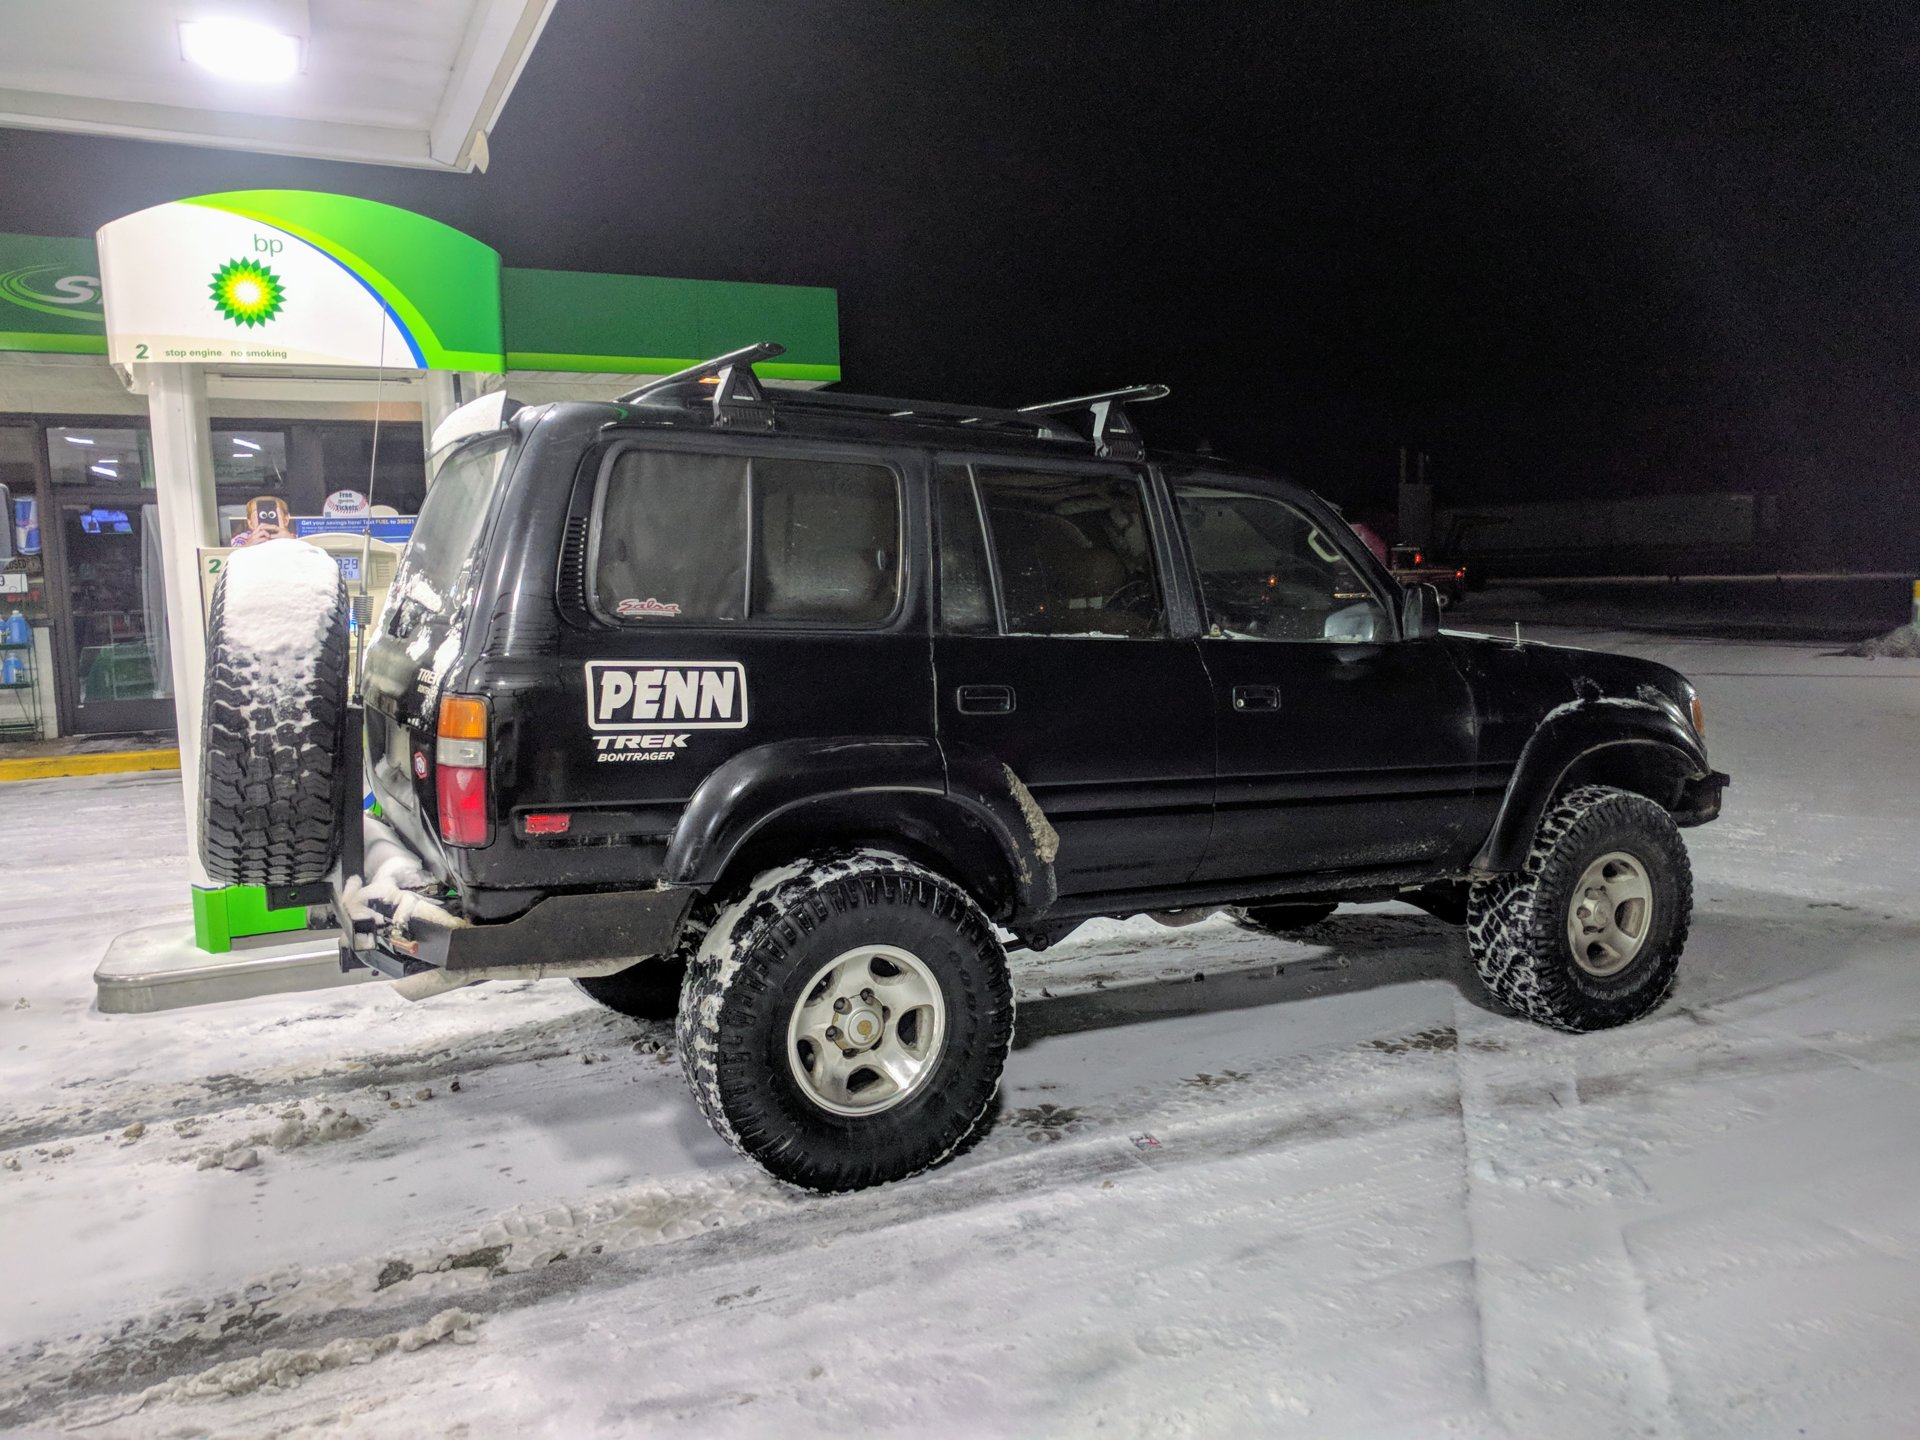 For Sale - OH: 1996 FZJ80, Factory 3x Locked  $6200! | IH8MUD Forum